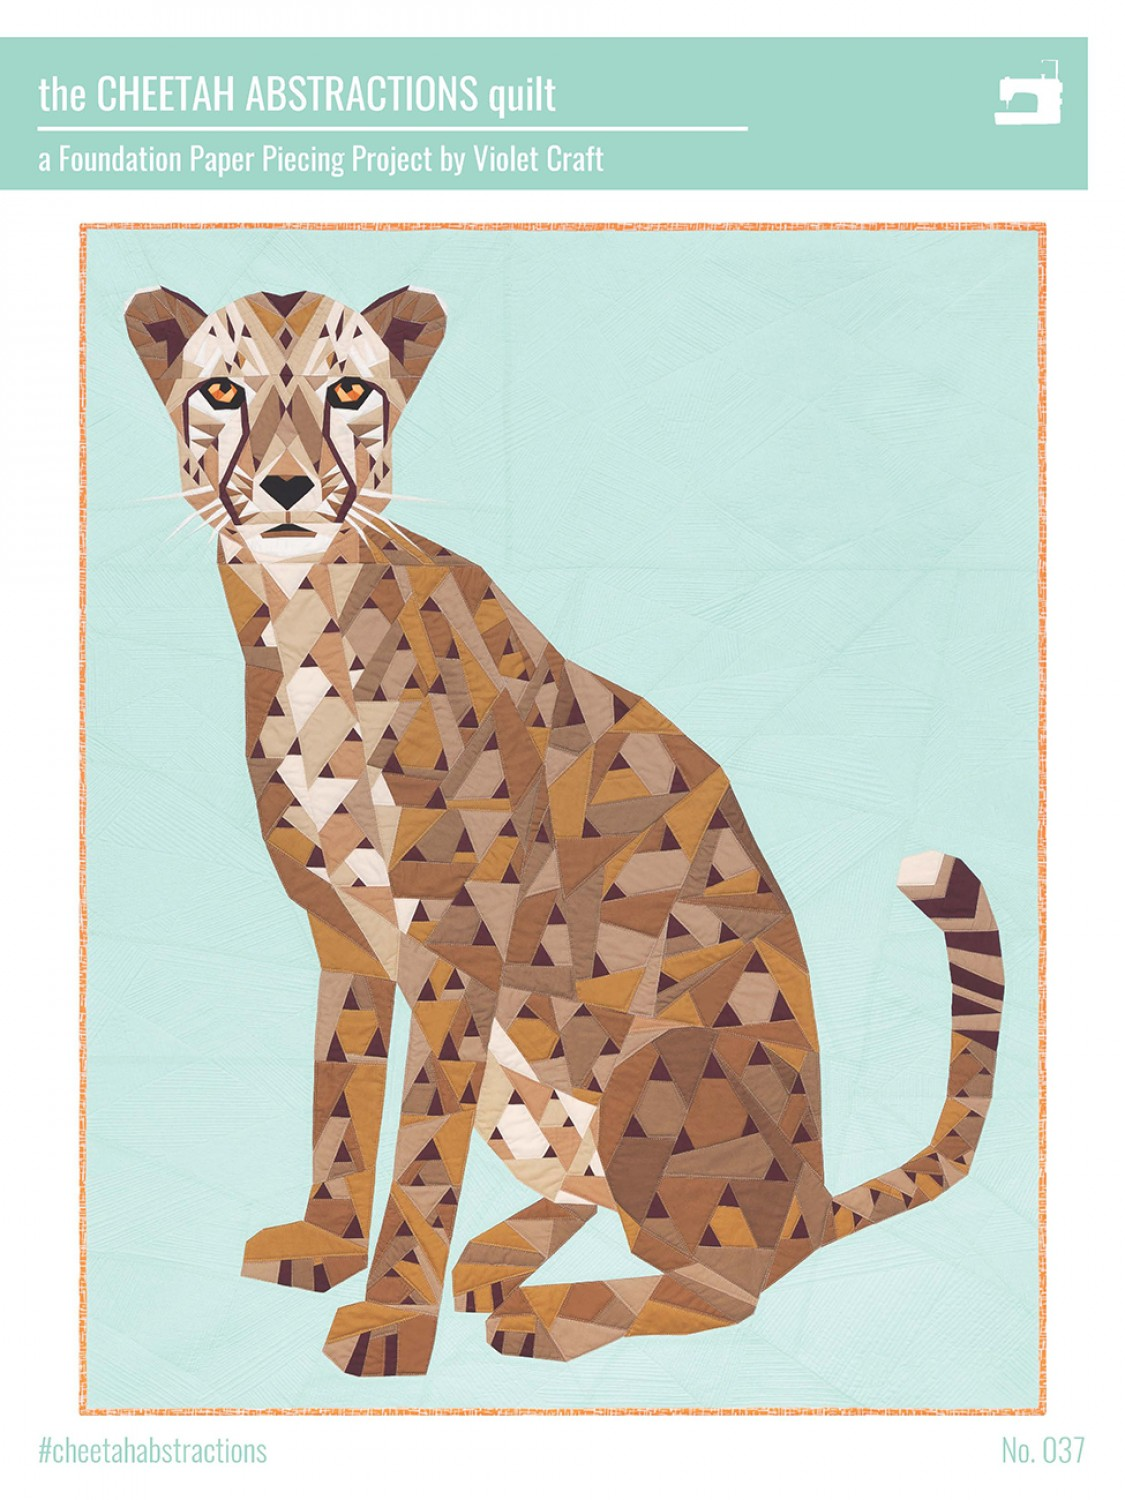 Patroon The Cheetah Abstractions Quilt